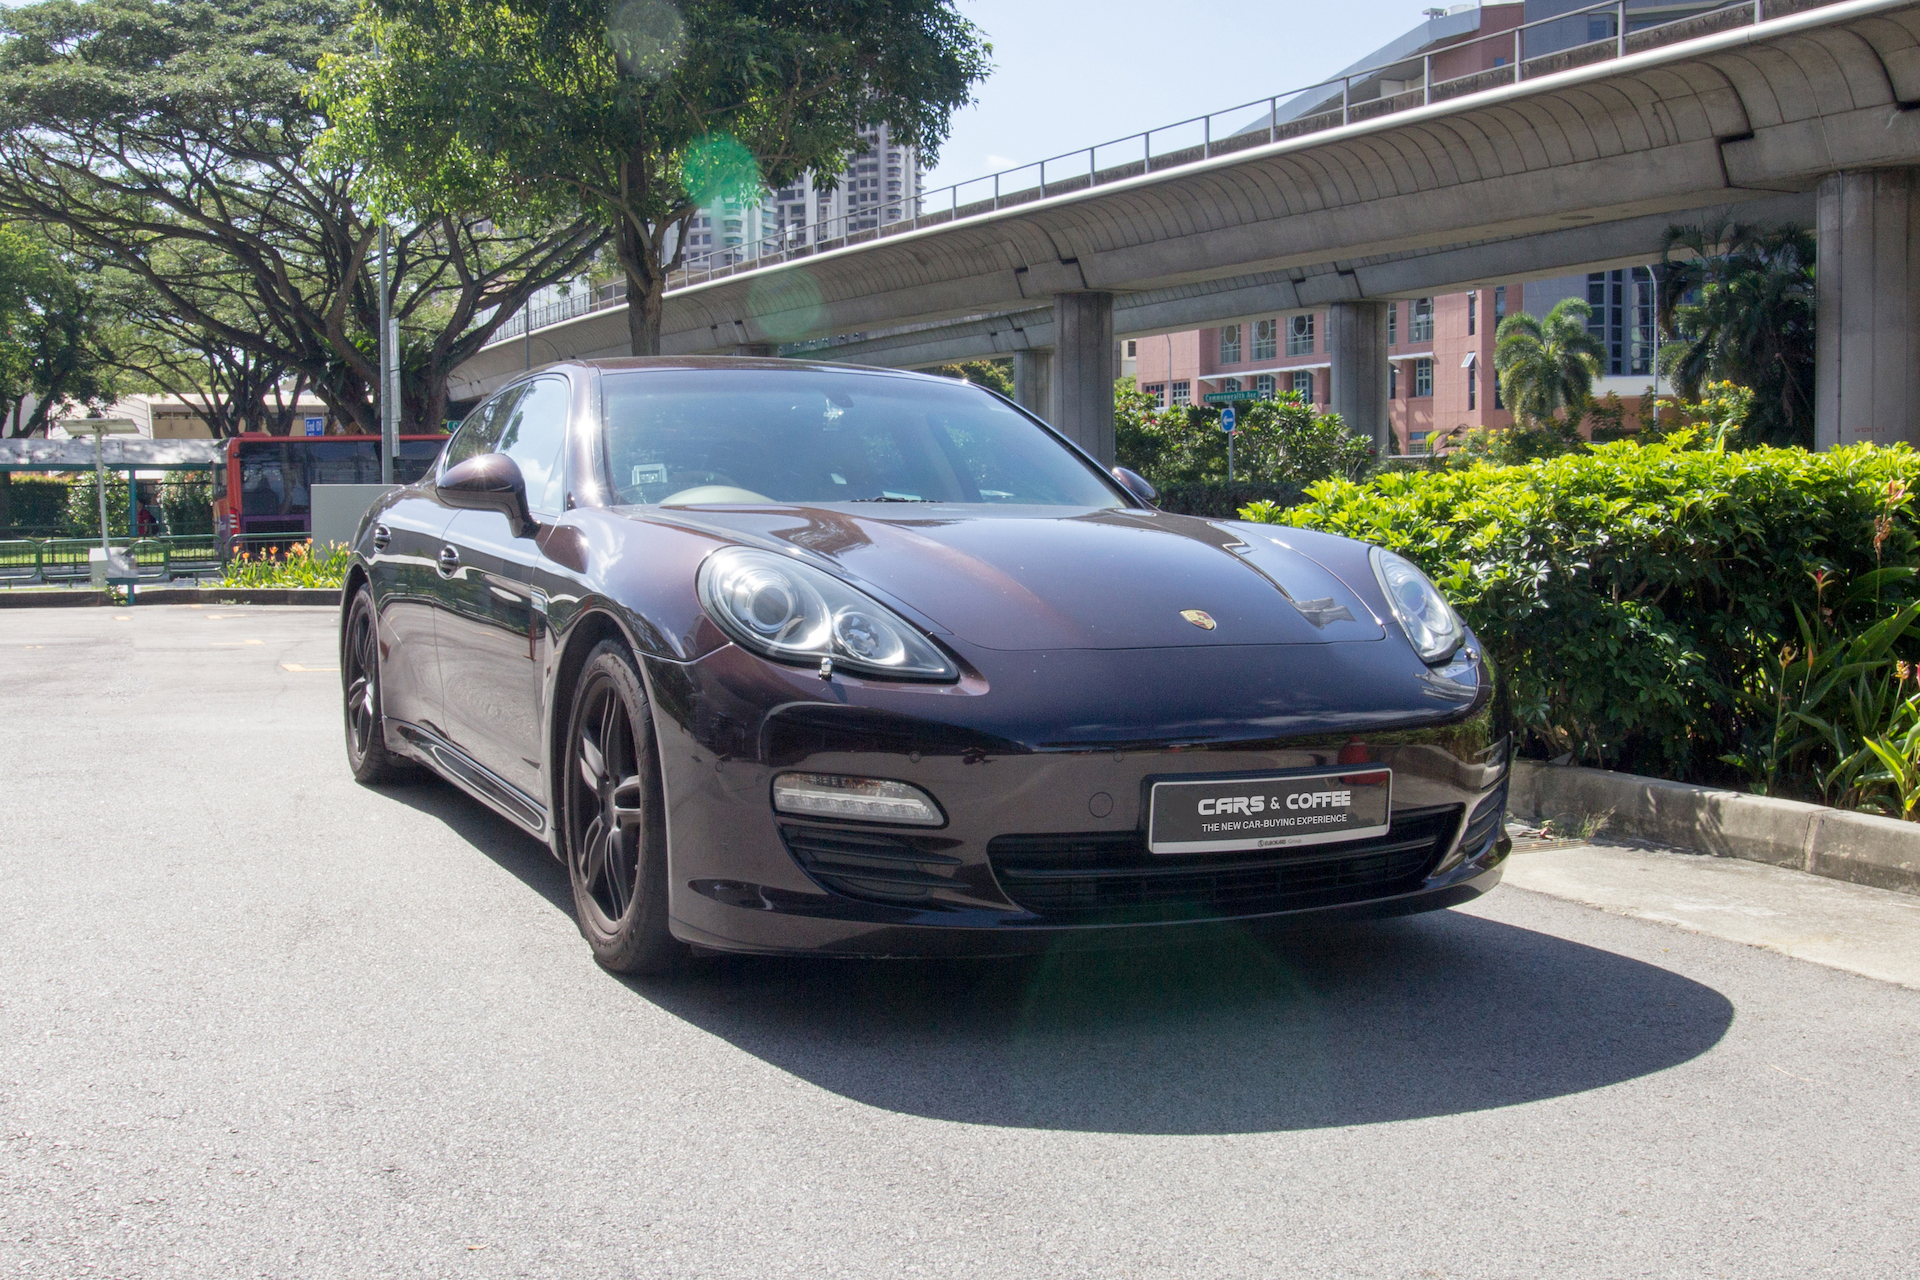 Certified Pre-Owned Porsche Panamera 3.6A PDK   Cars and Coffee Singapore